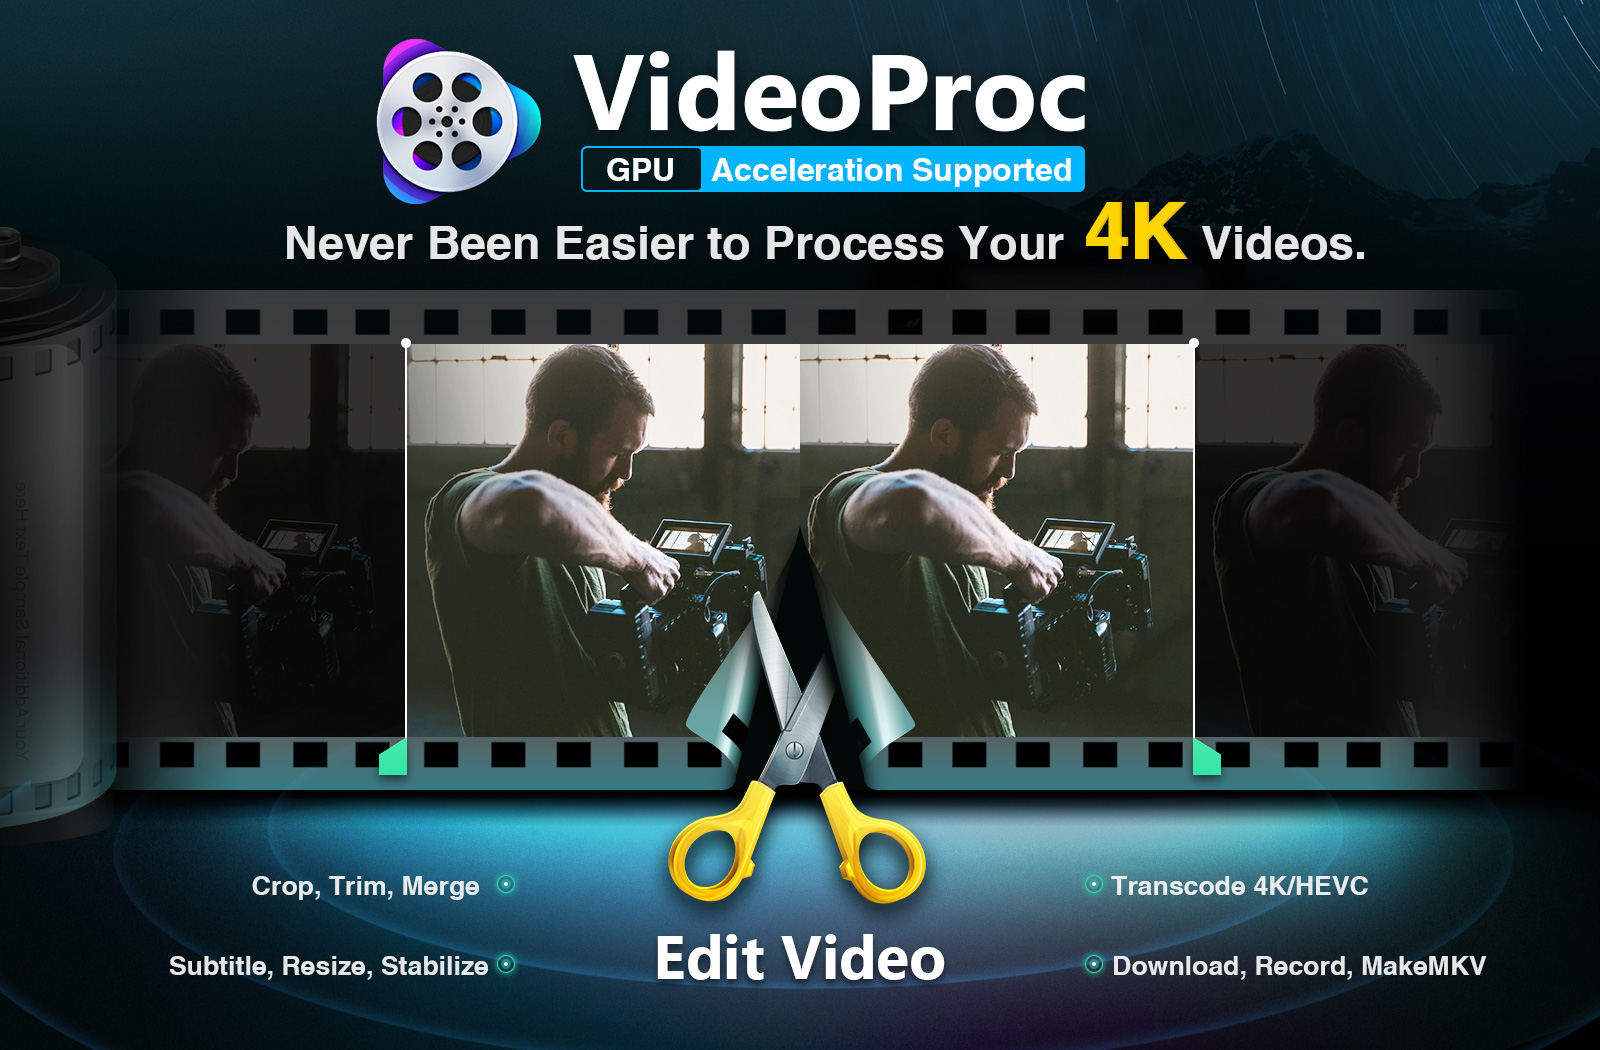 VideoProc Provides Creators with One-Stop Video Processing Software